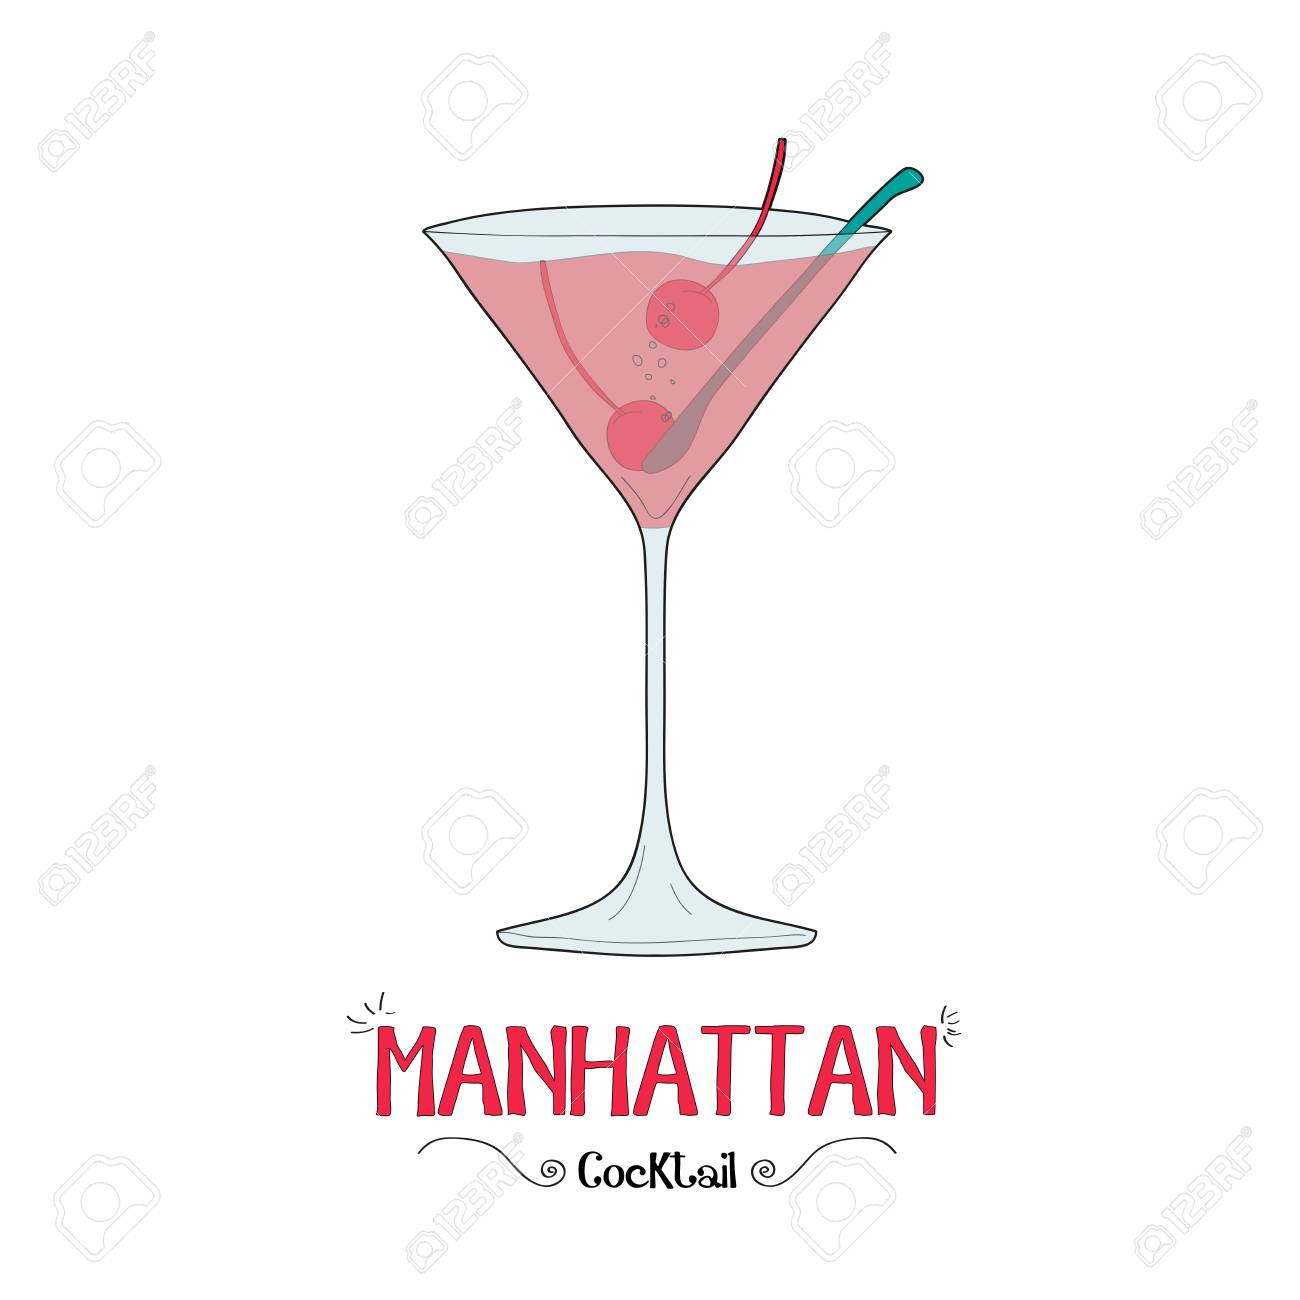 Manhattan Cocktail Bar For Business Royalty Free Cliparts Vectors And Stock Illustration Image 60315968